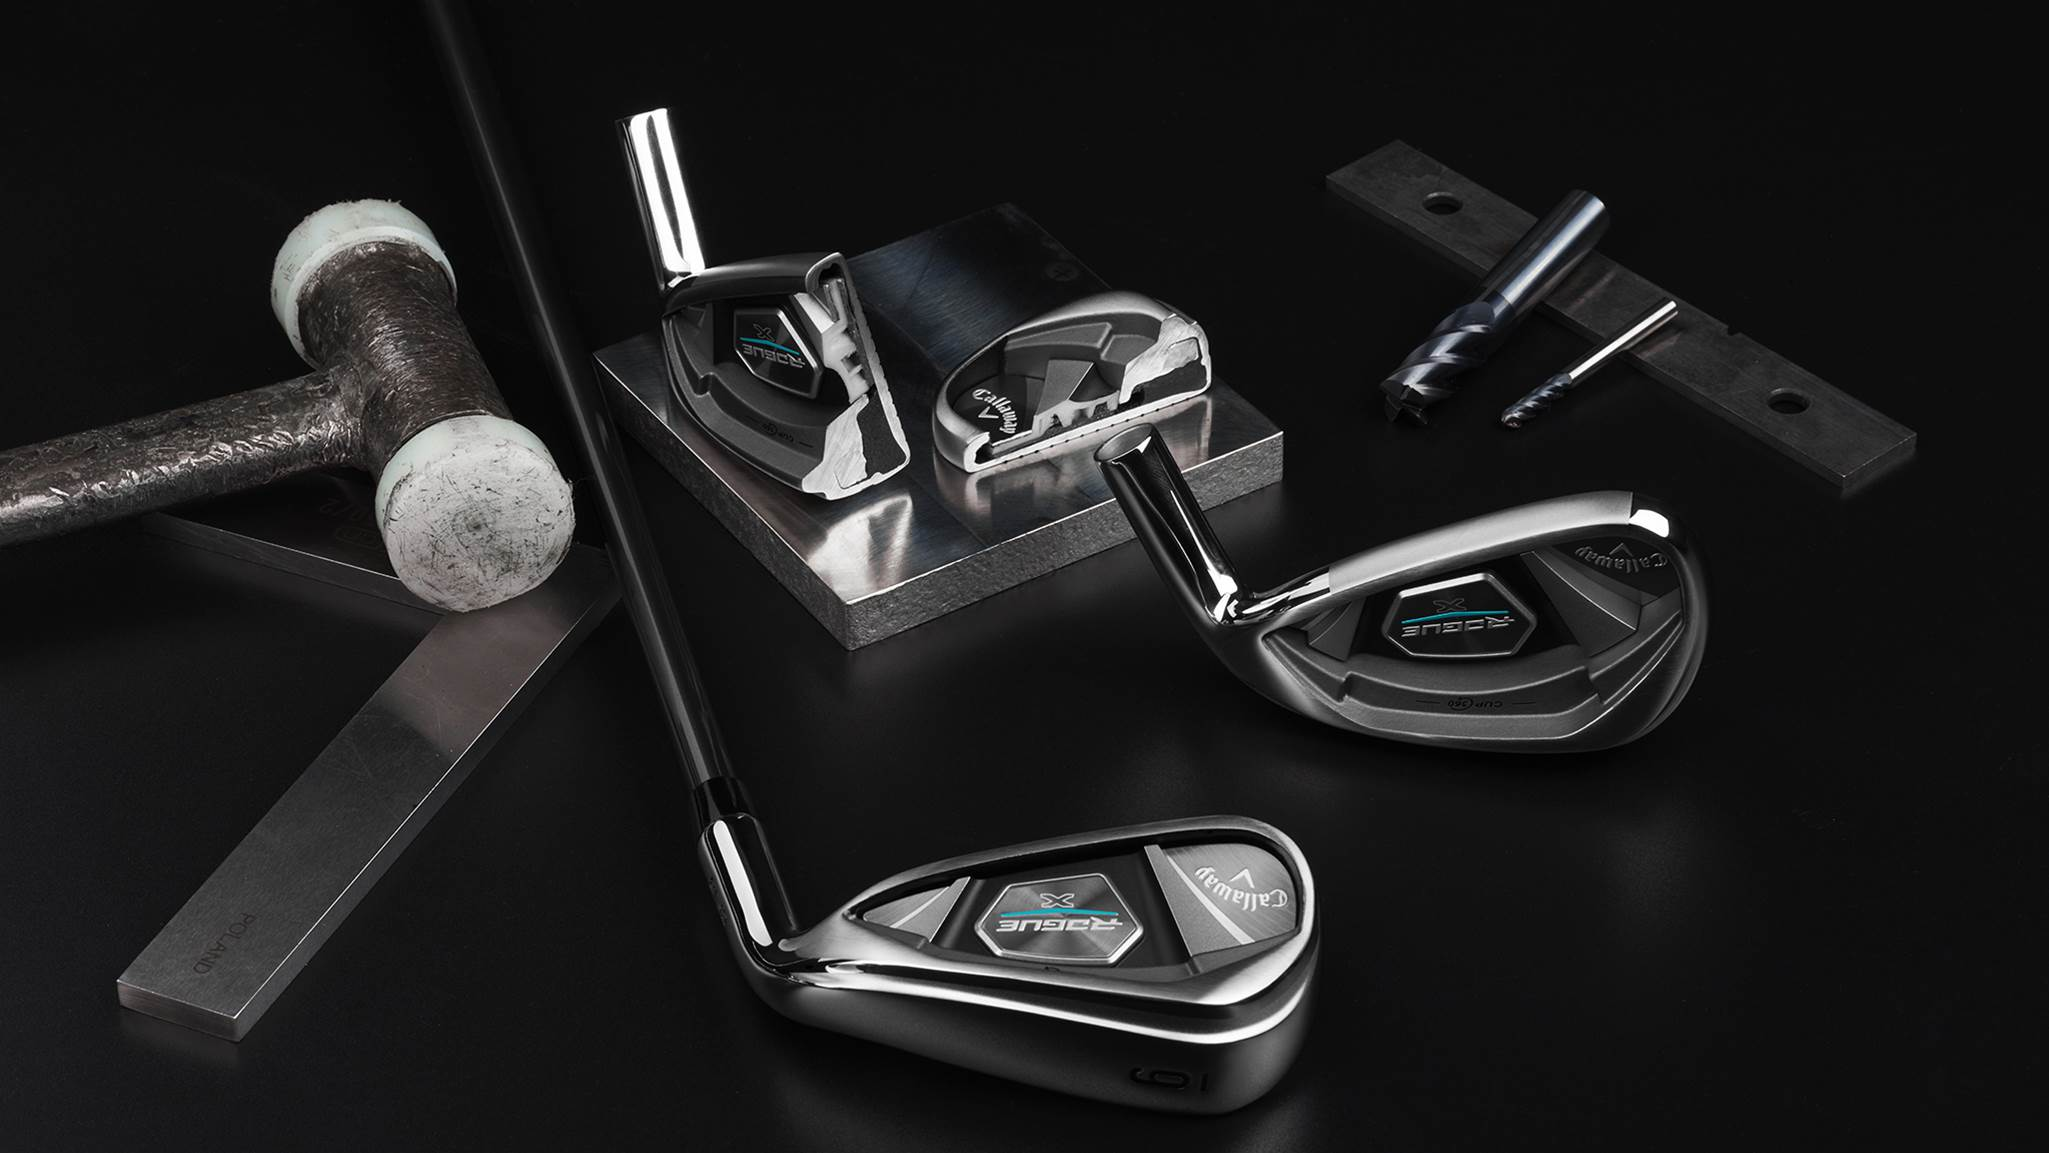 TESTED: Callaway Rogue irons